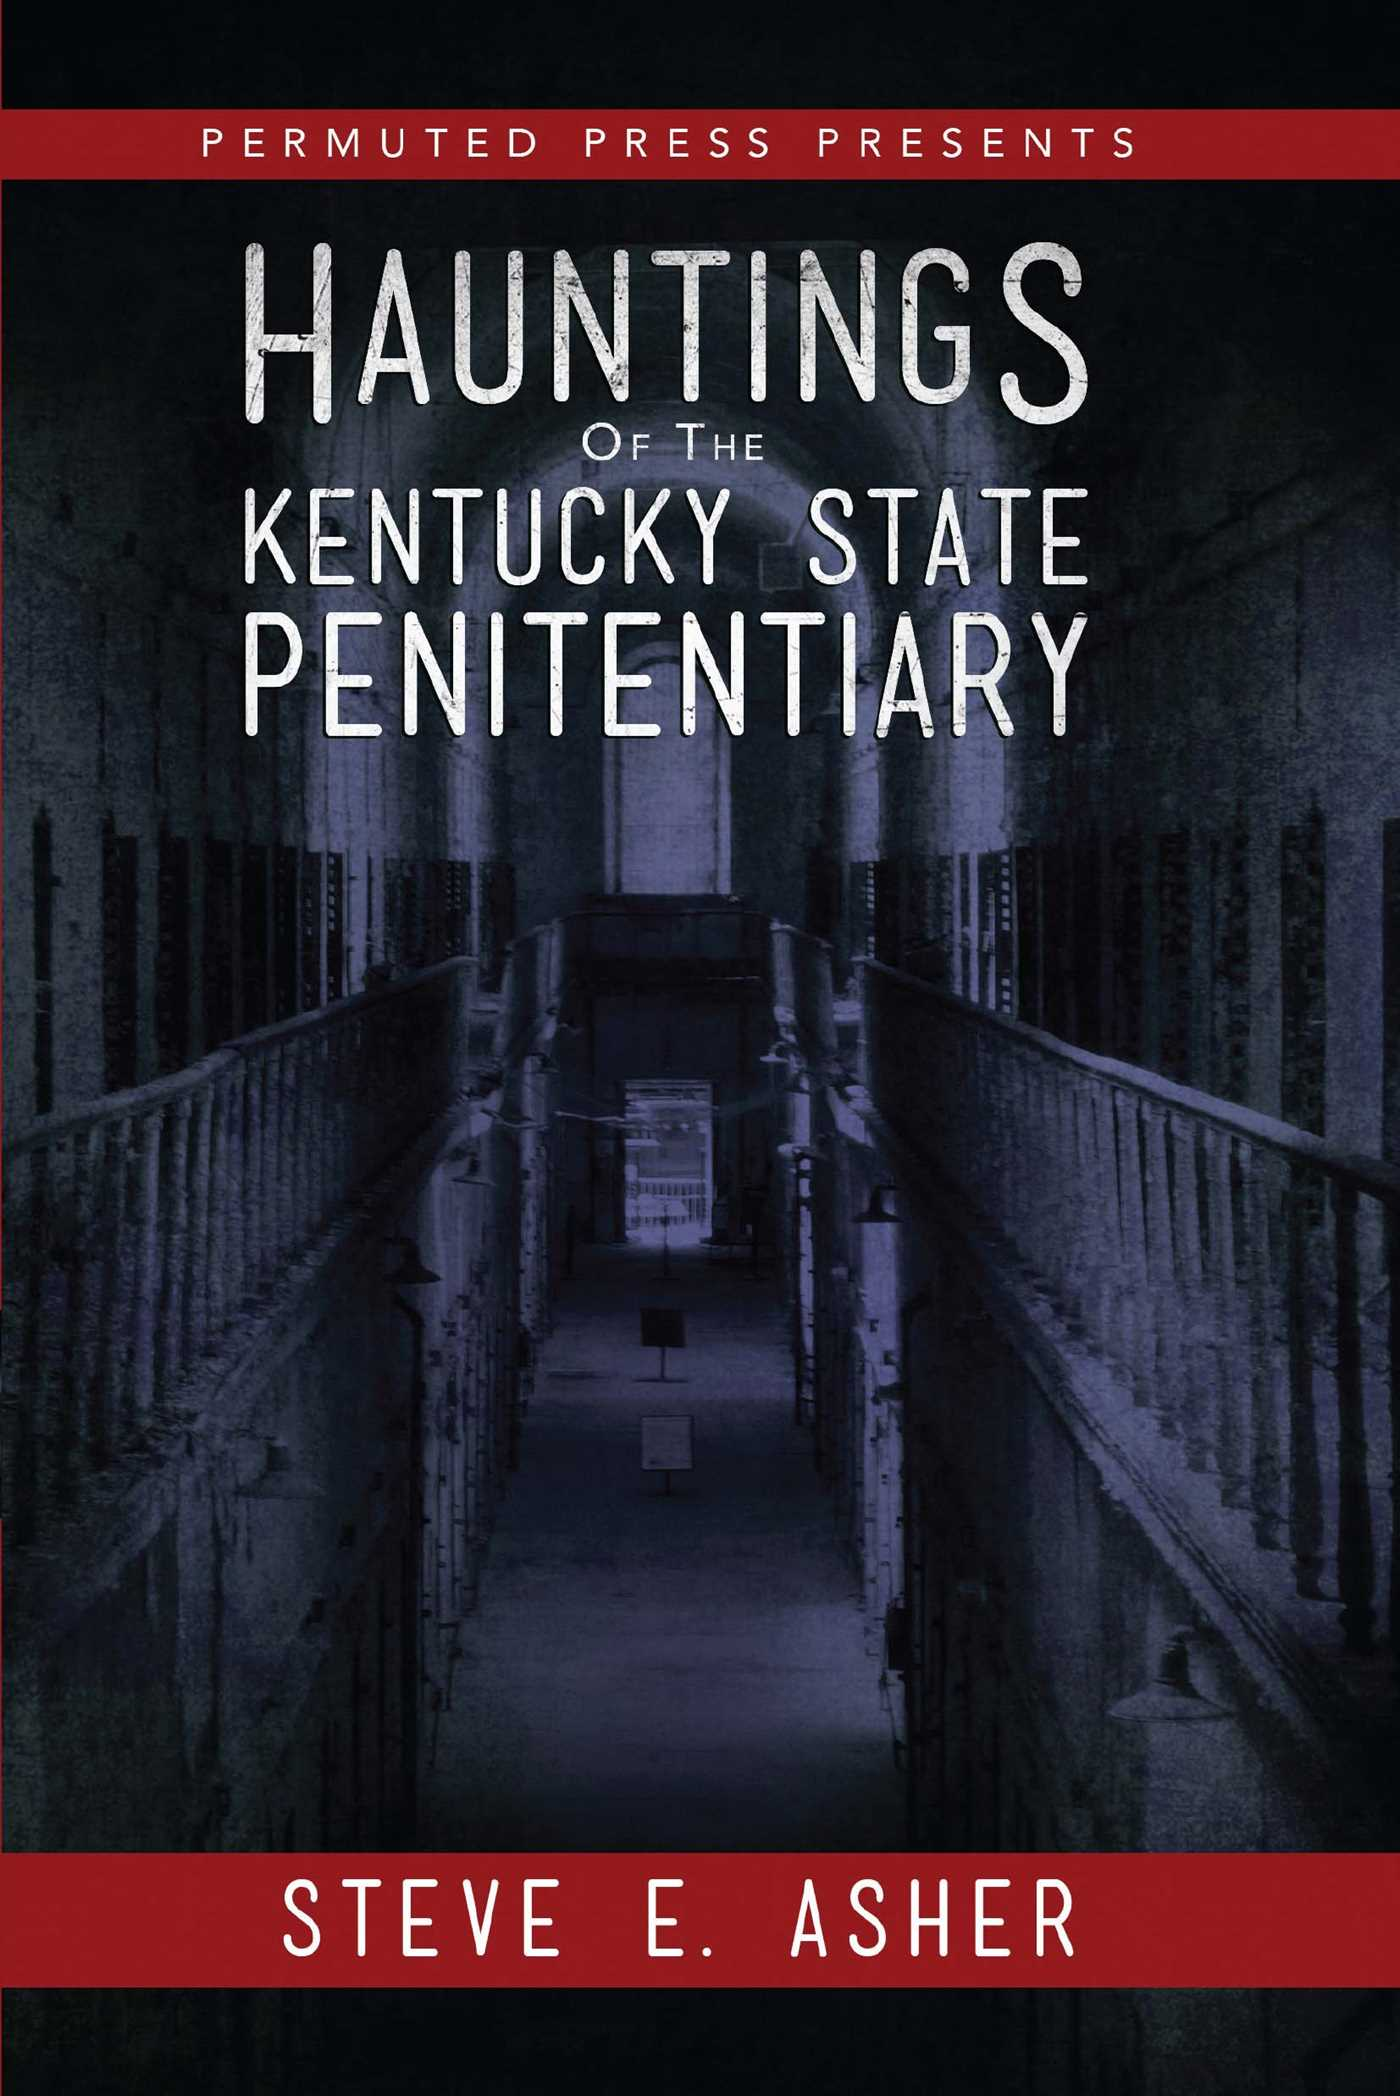 Steve Asher | How to Escape Hauntings of the Kentucky State Penitentiary - Powered by Inception Radio Network